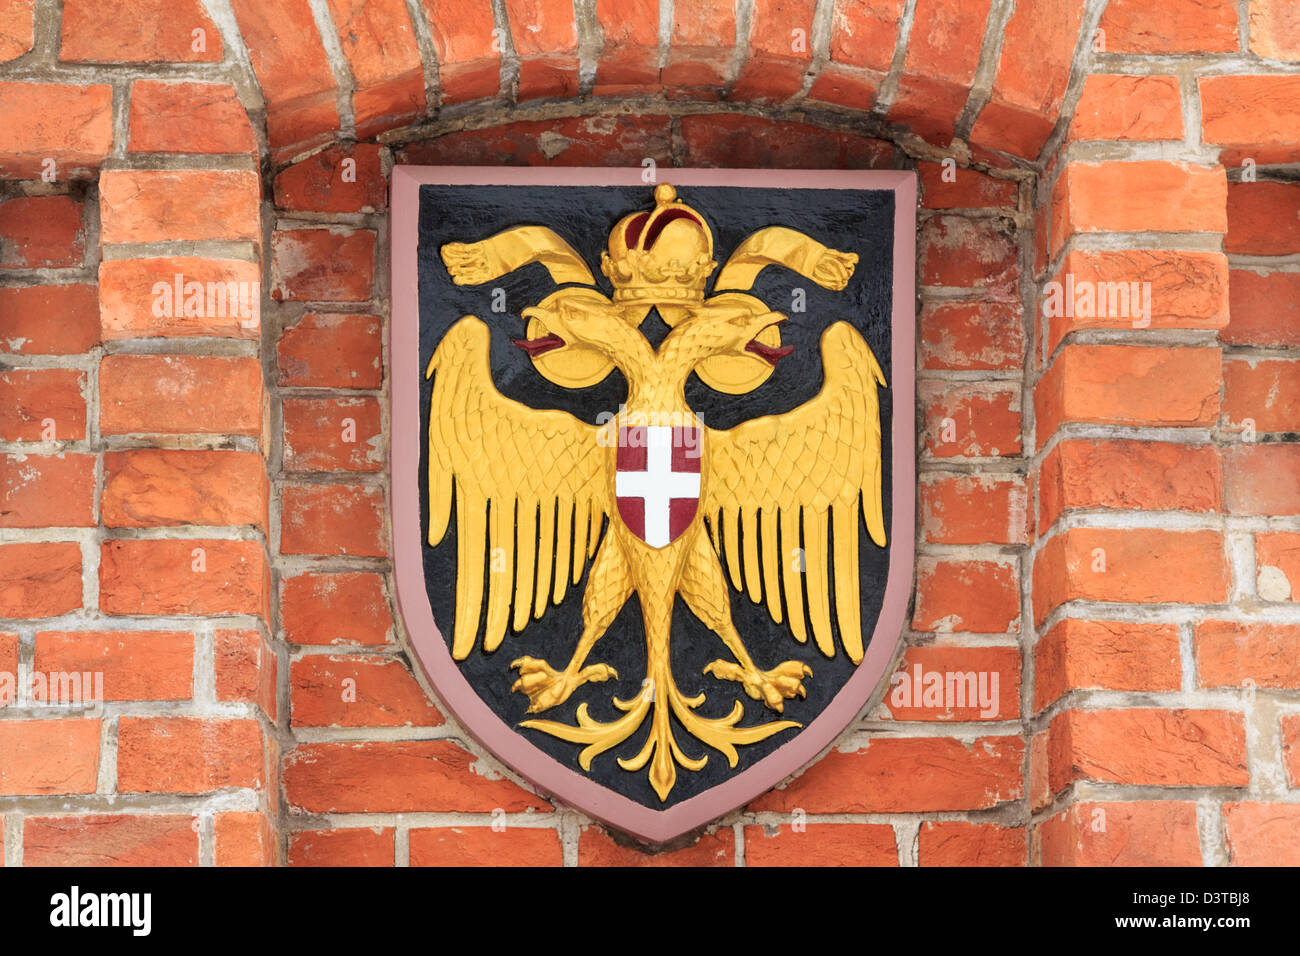 Austrian empire coat of arms: the double headed eagle - Stock Image